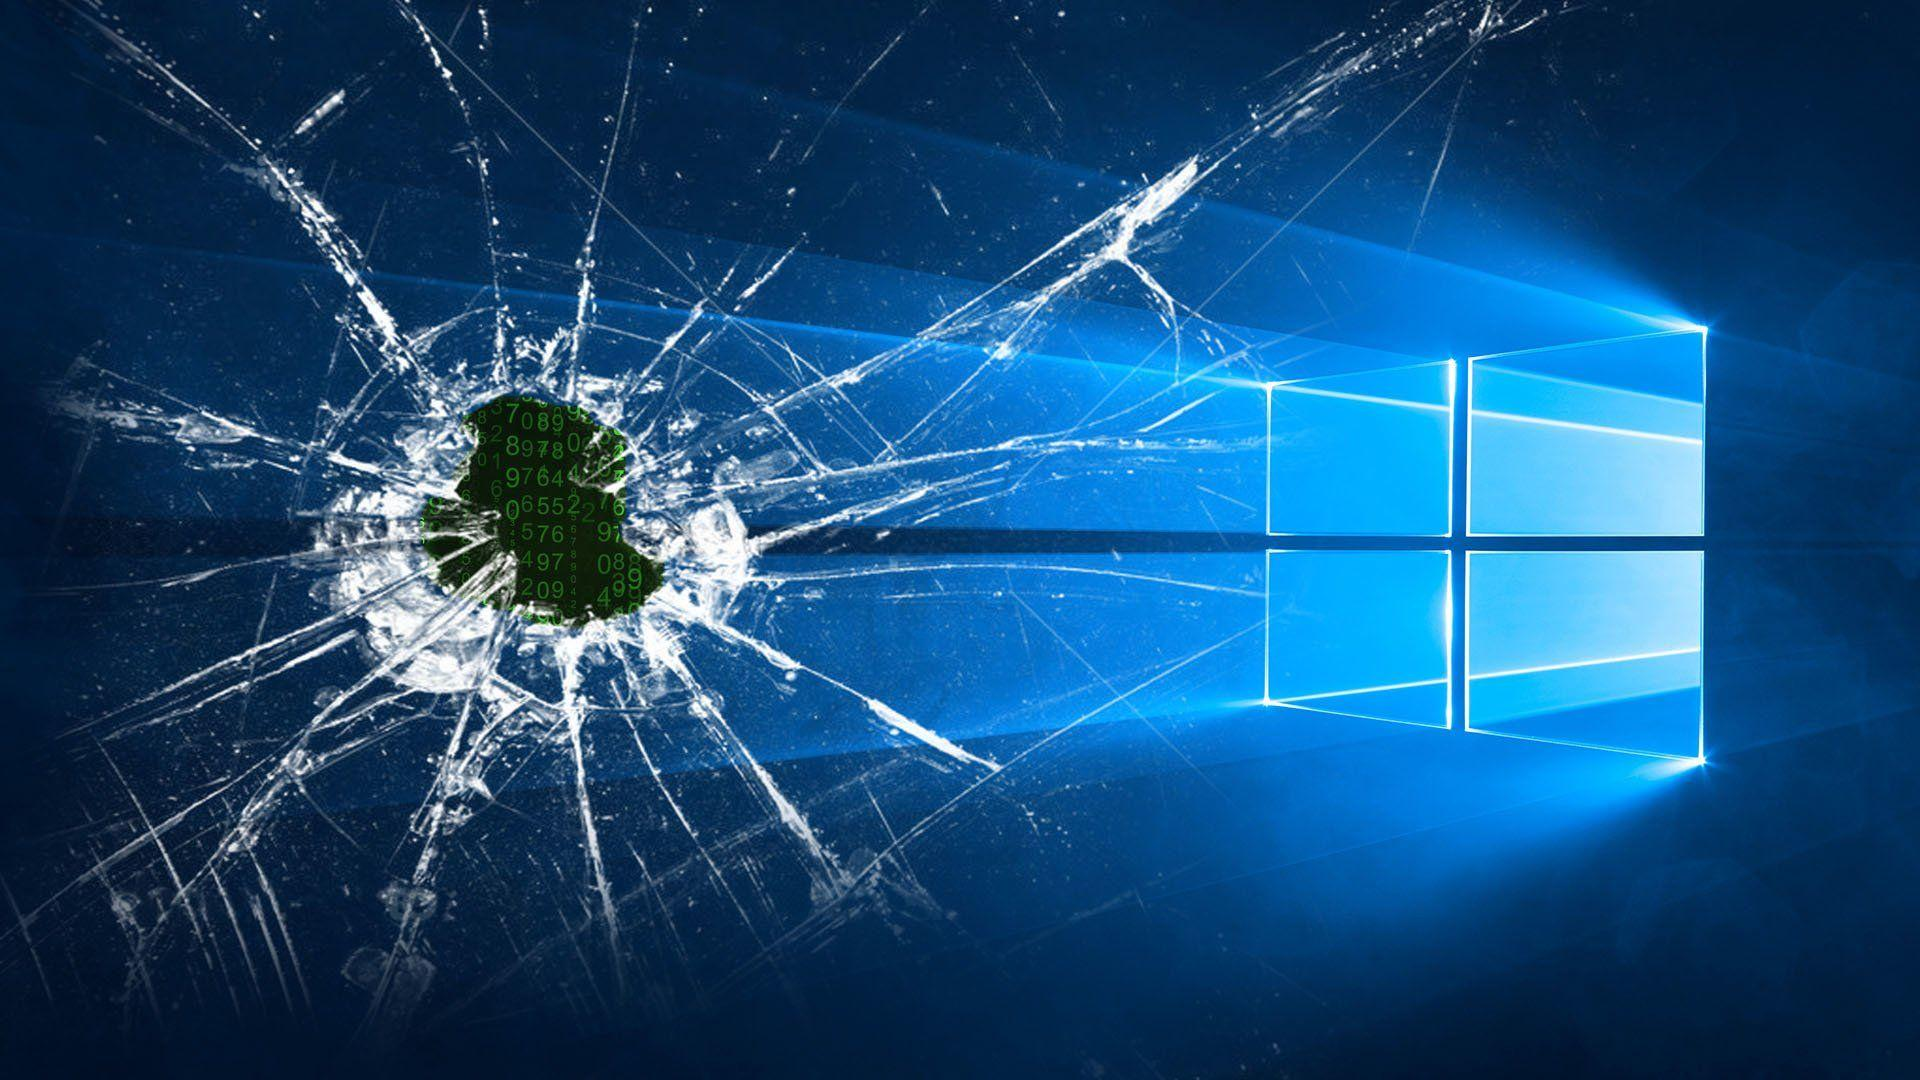 Cracked Windows Backgrounds Wallpaper Cave